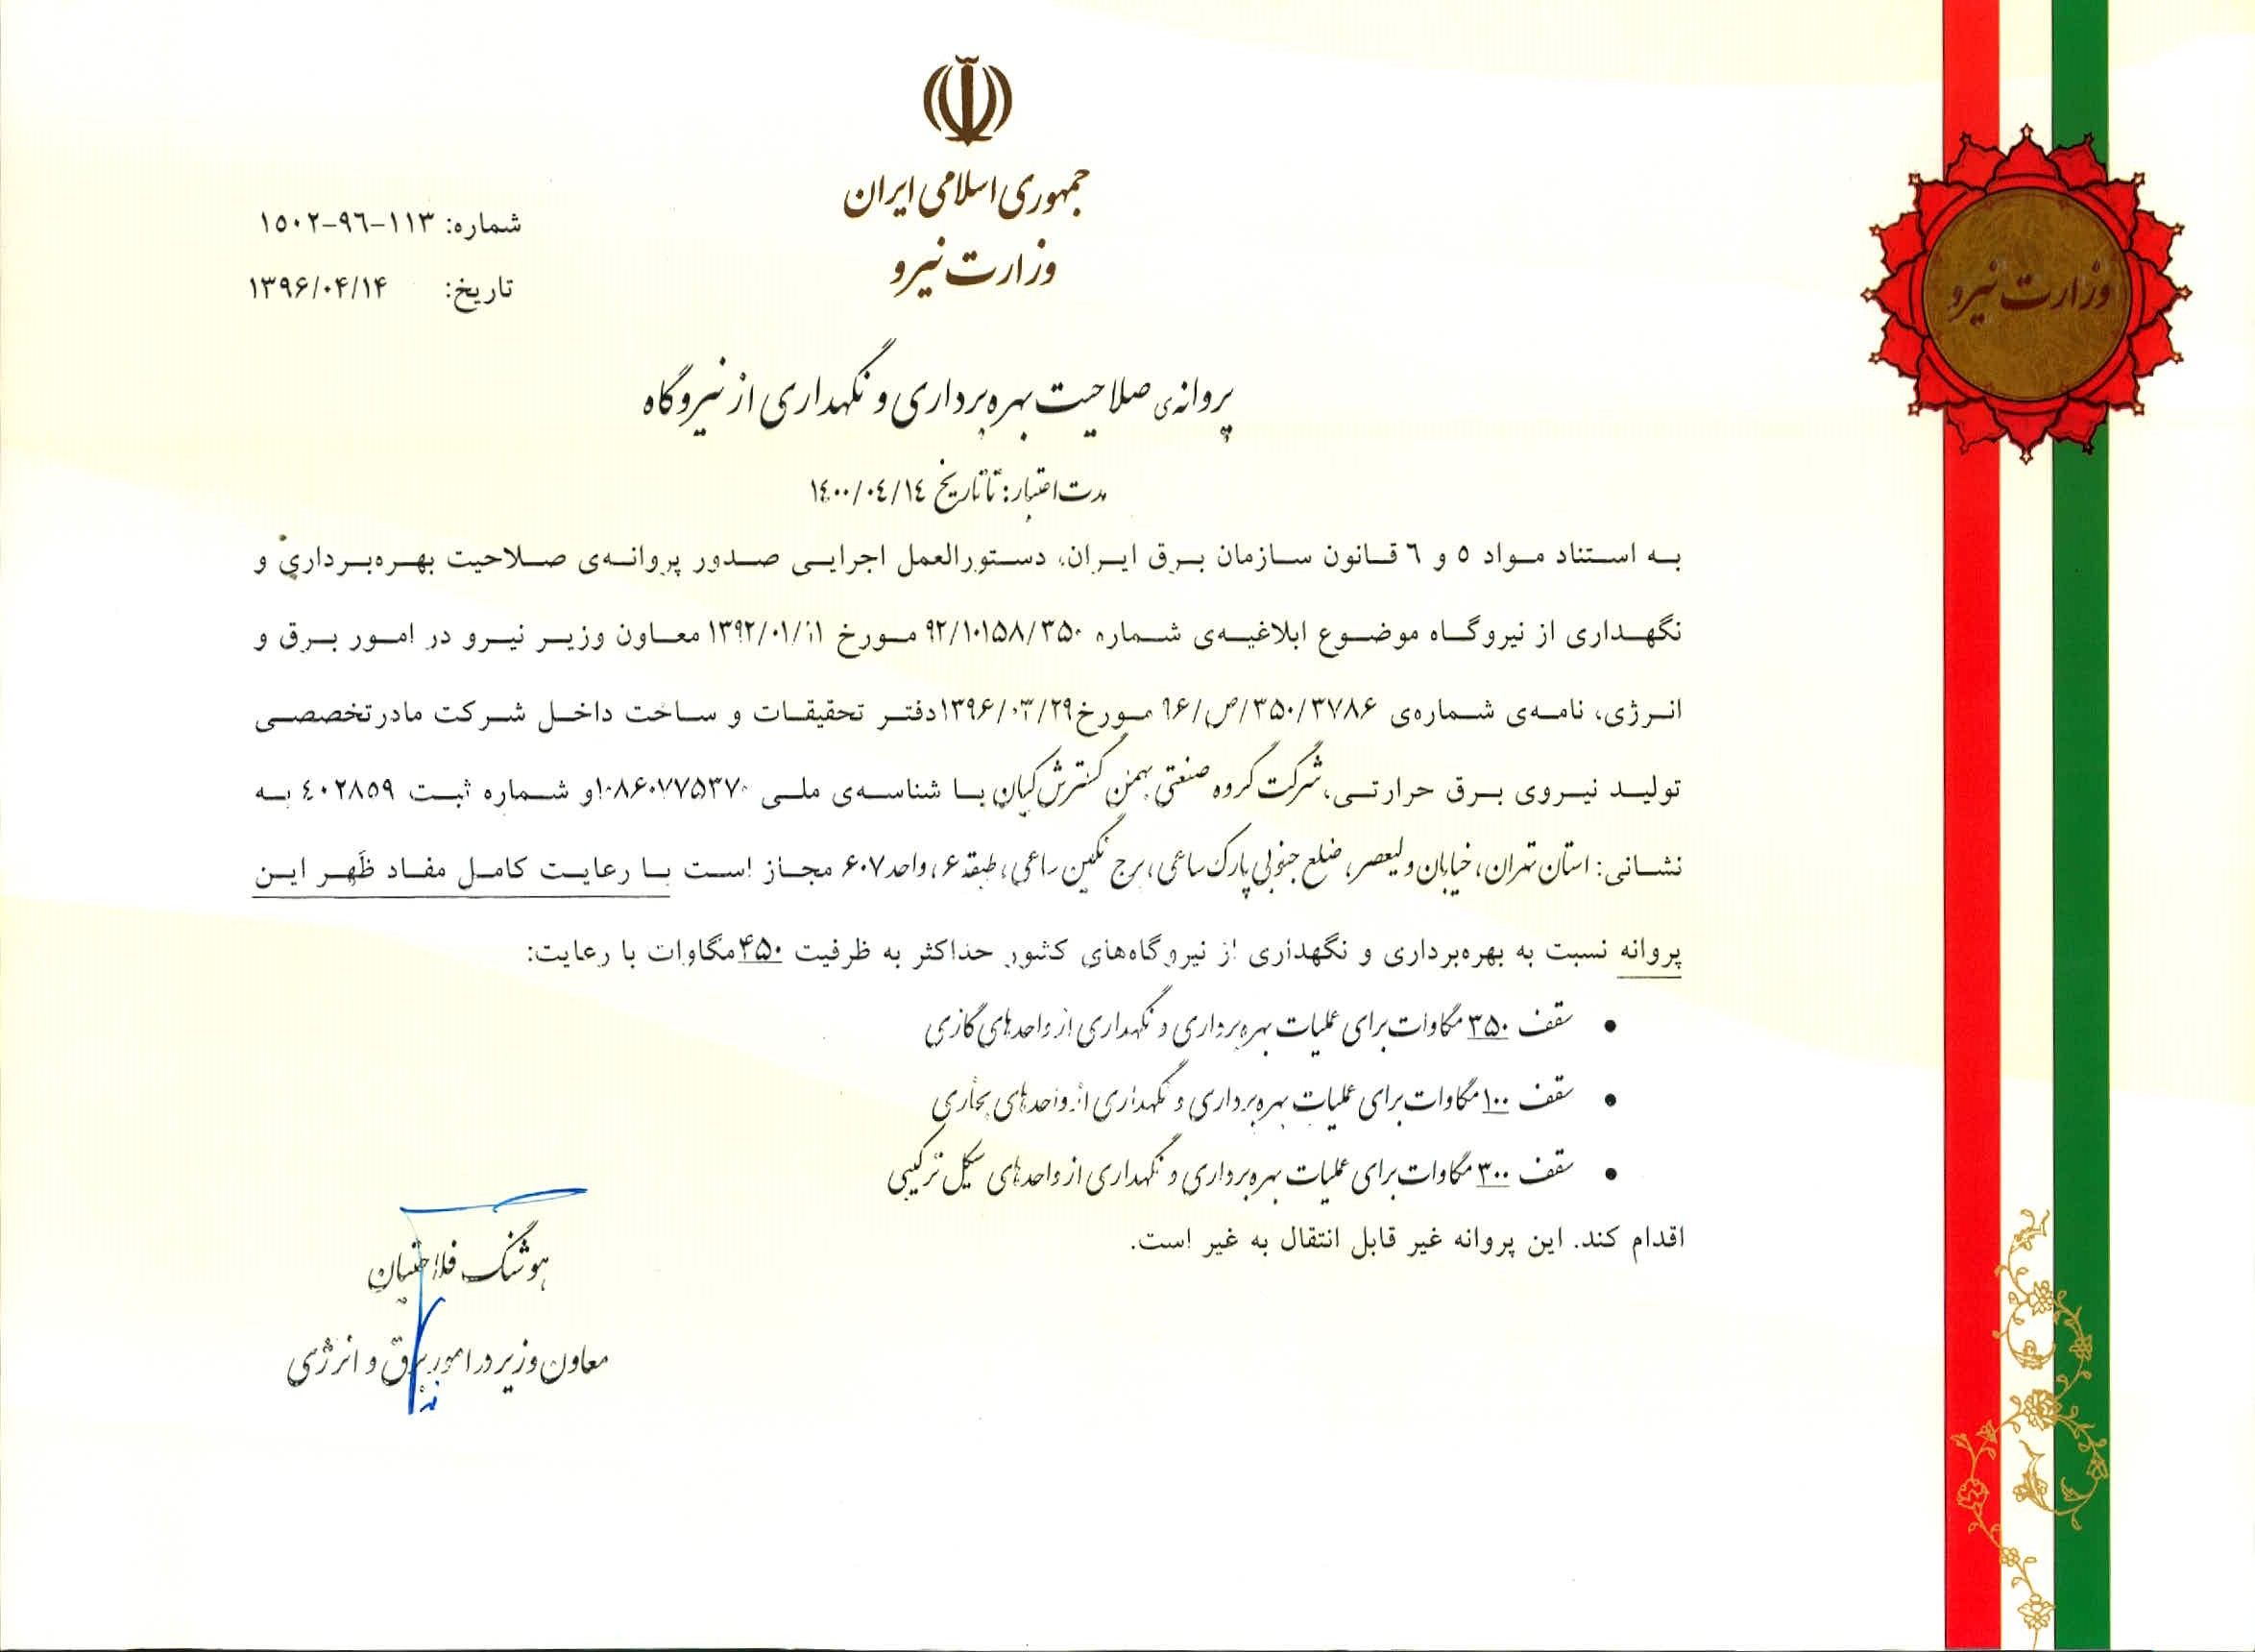 BGK company Obtaining a Certificate for operation and maintenance of the power plant in Iran